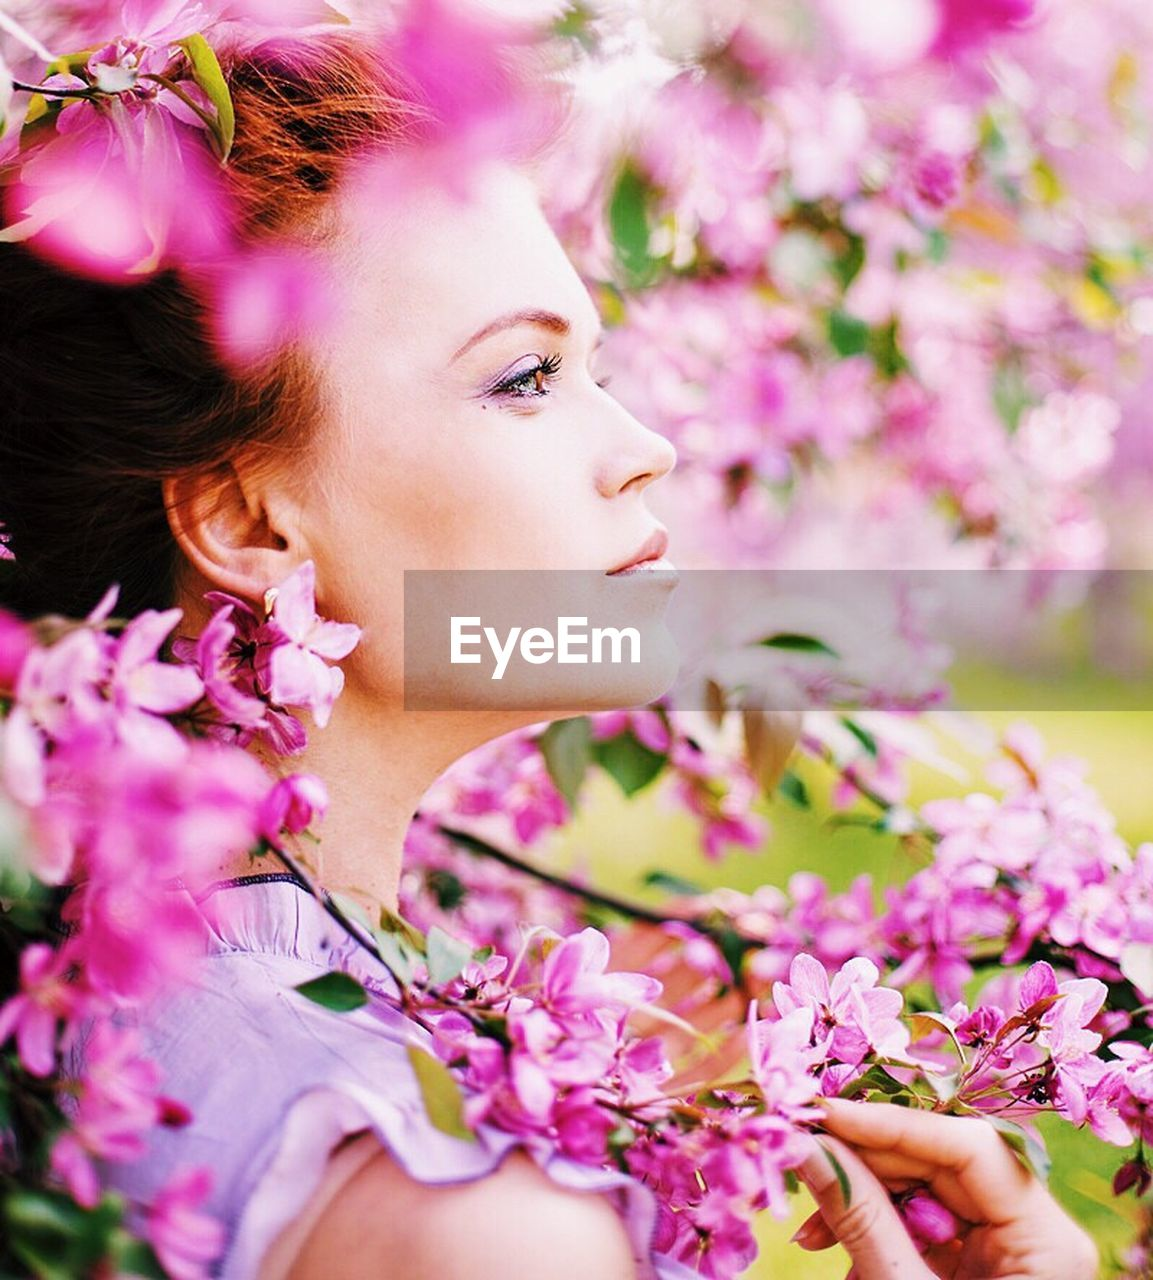 flower, blossom, fragility, pink color, beautiful woman, beauty in nature, young adult, one person, nature, young women, beauty, springtime, freshness, headshot, close-up, real people, outdoors, branch, day, tree, flower head, one young woman only, people